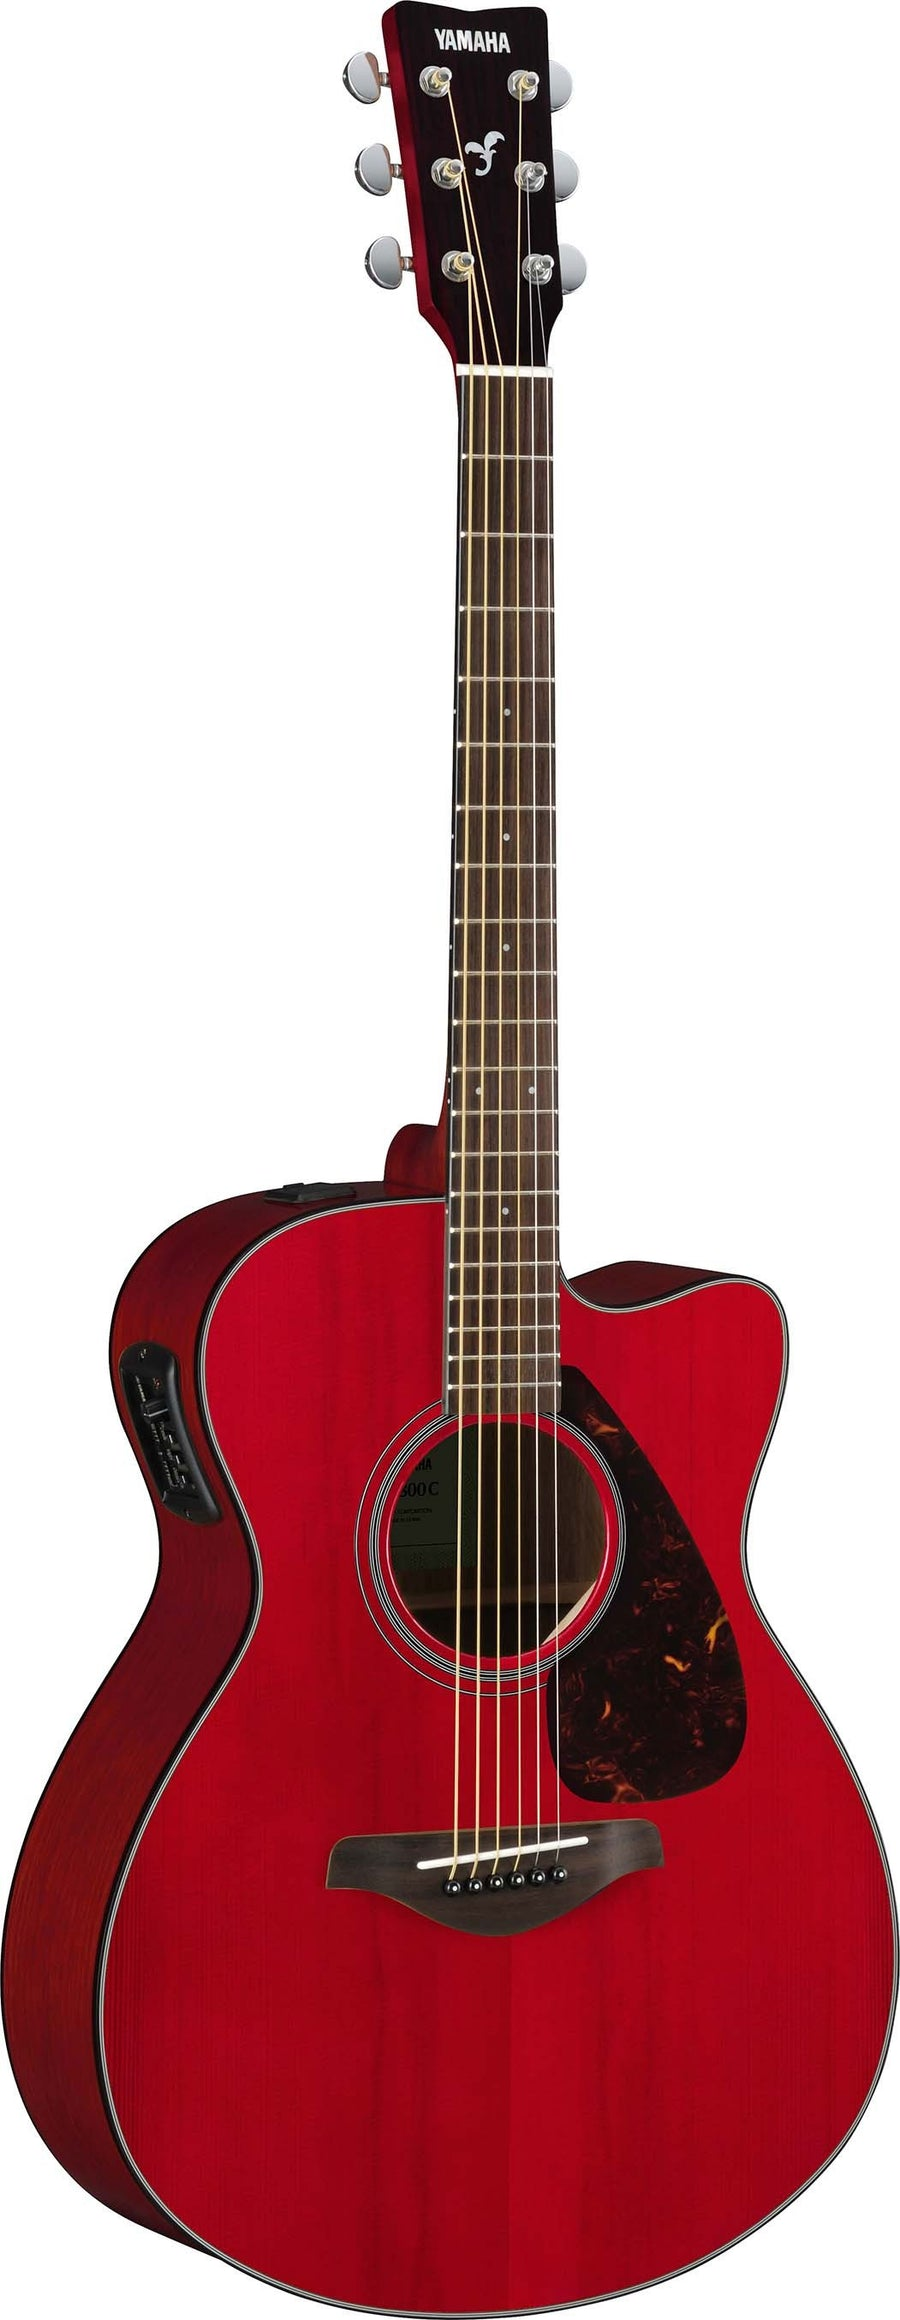 Yamaha FSX800C Ruby Red Acoustic Electric Guitar Bundle